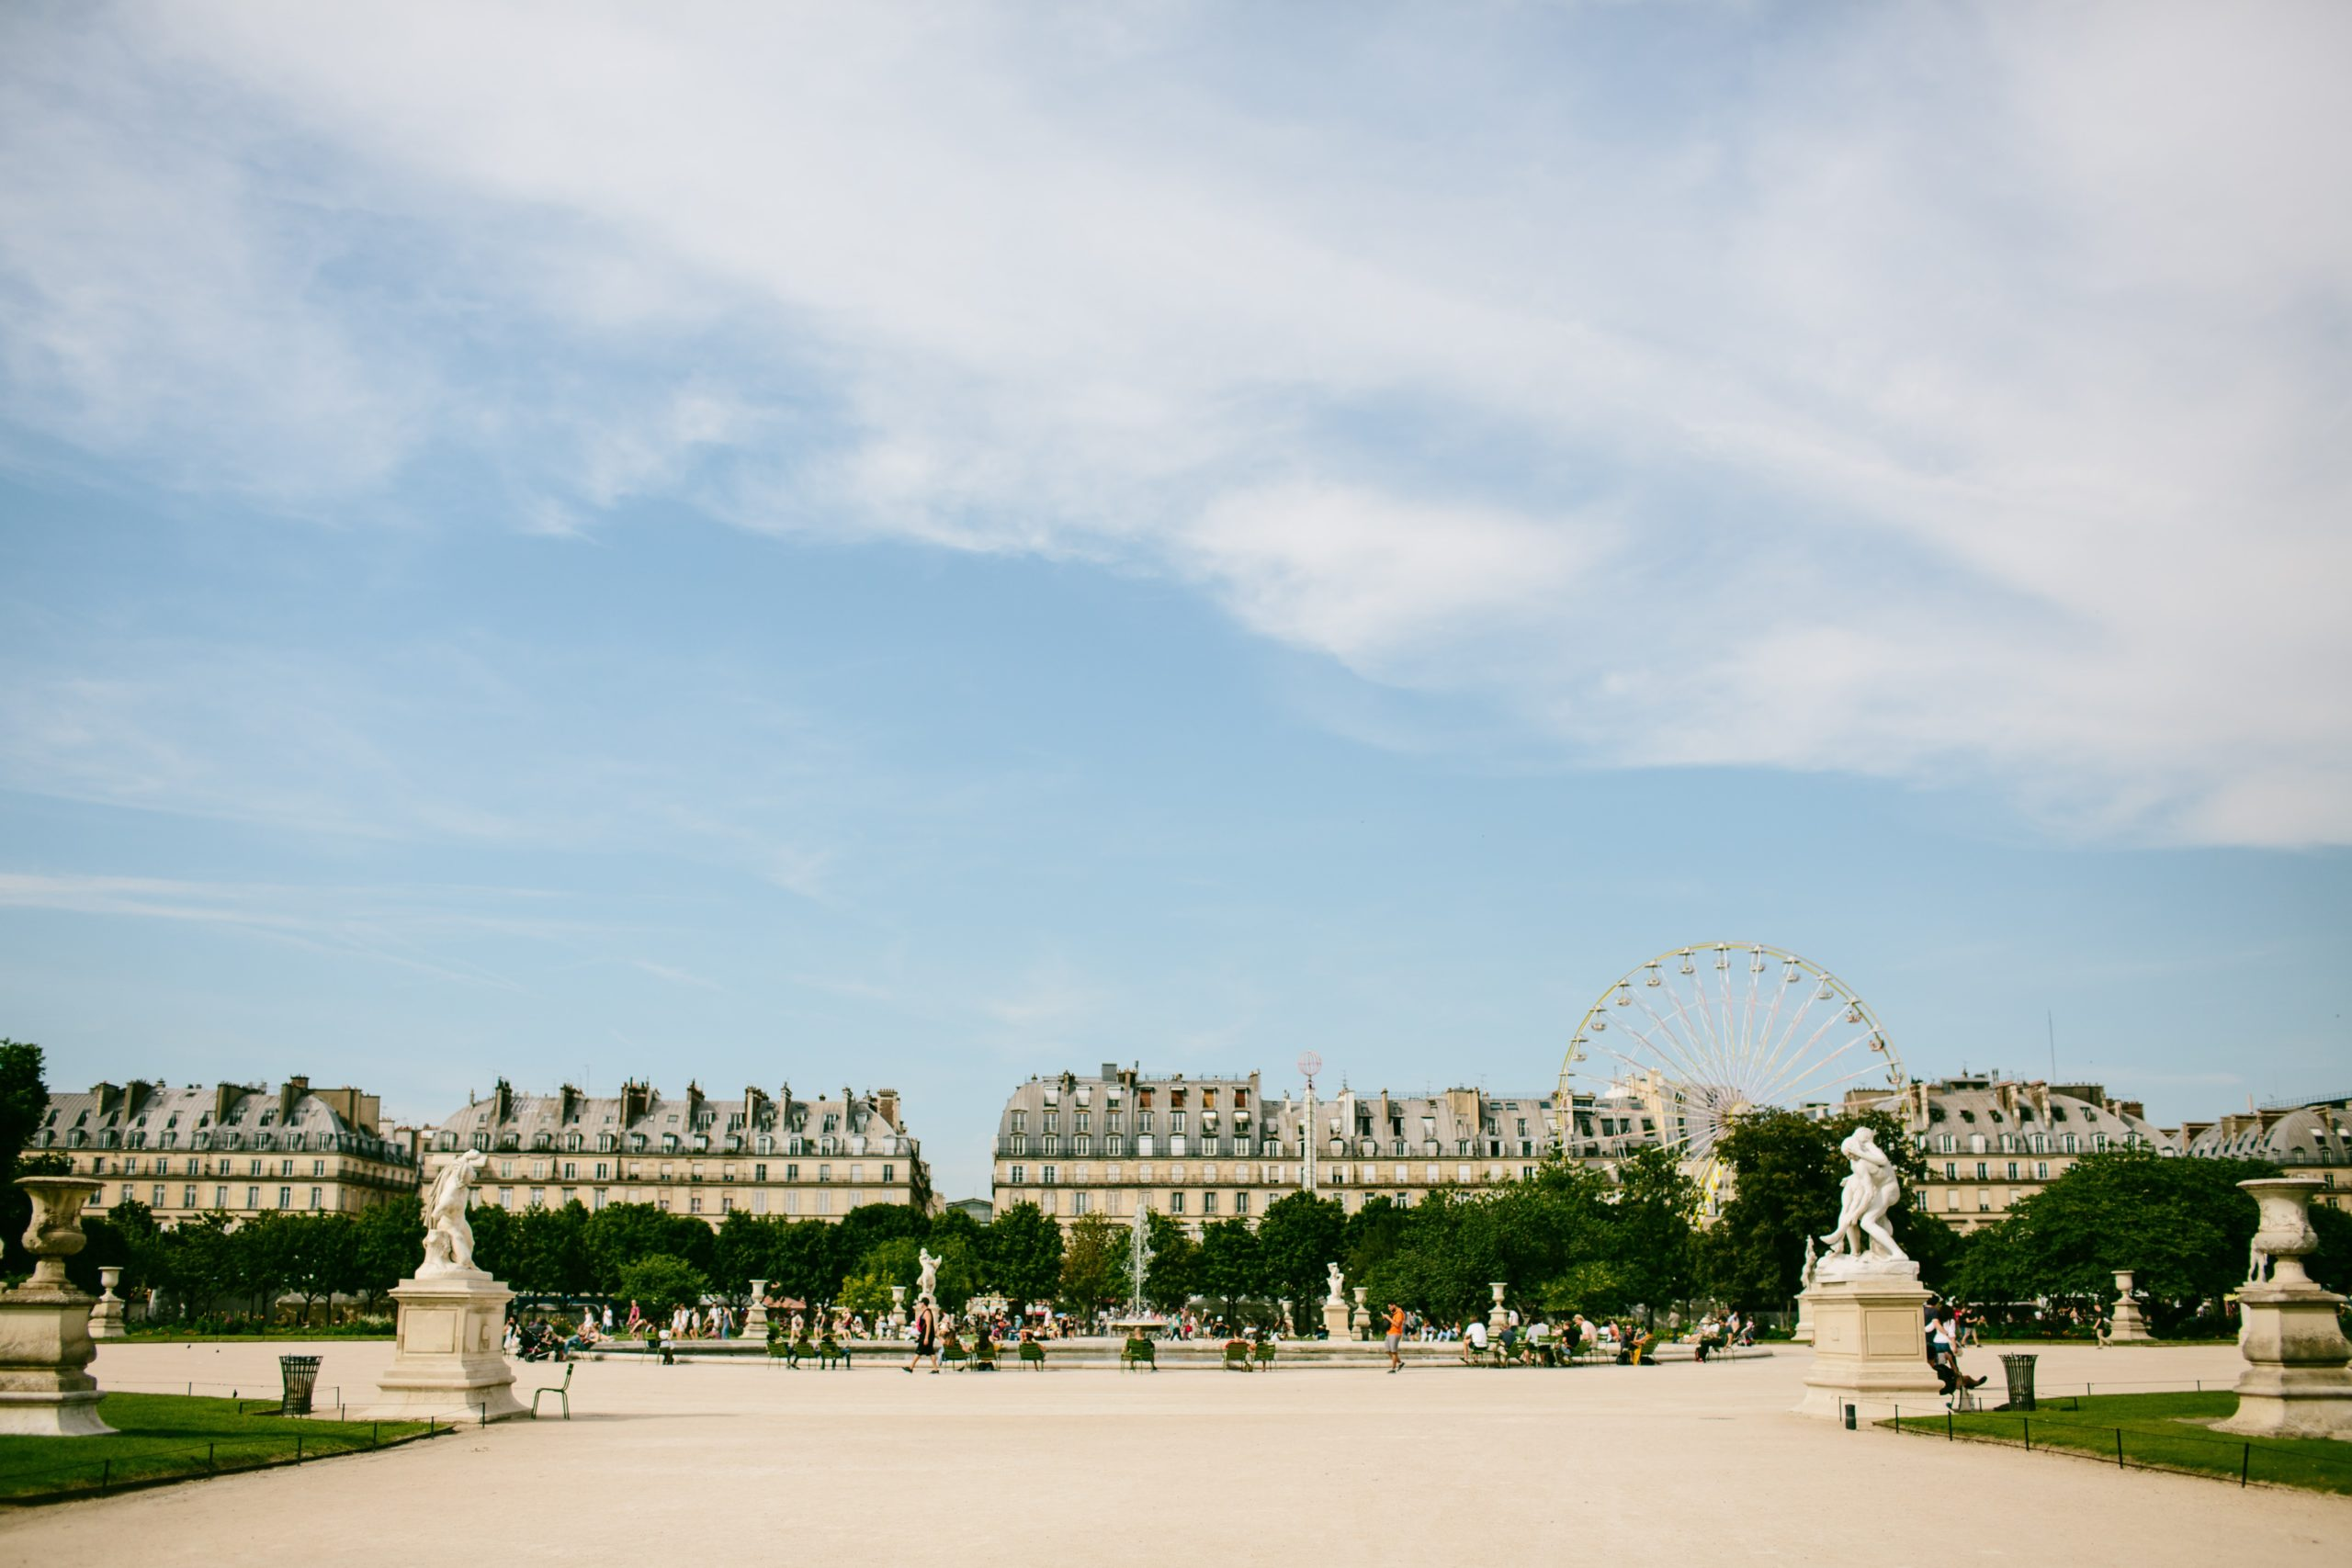 Paris-in-August-Jardin-des-Tuileries